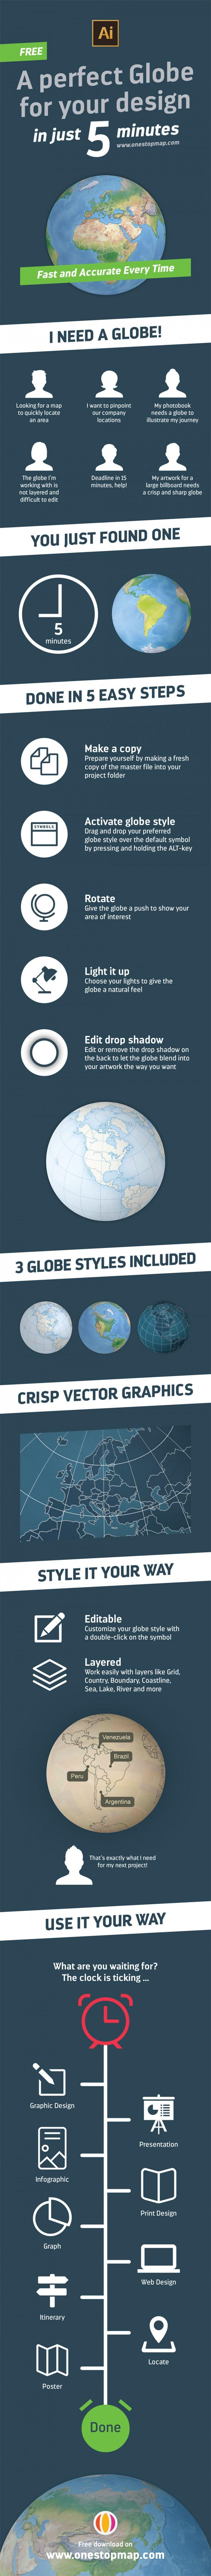 A Perfect Globe For Your Design In Just 5 Minutes